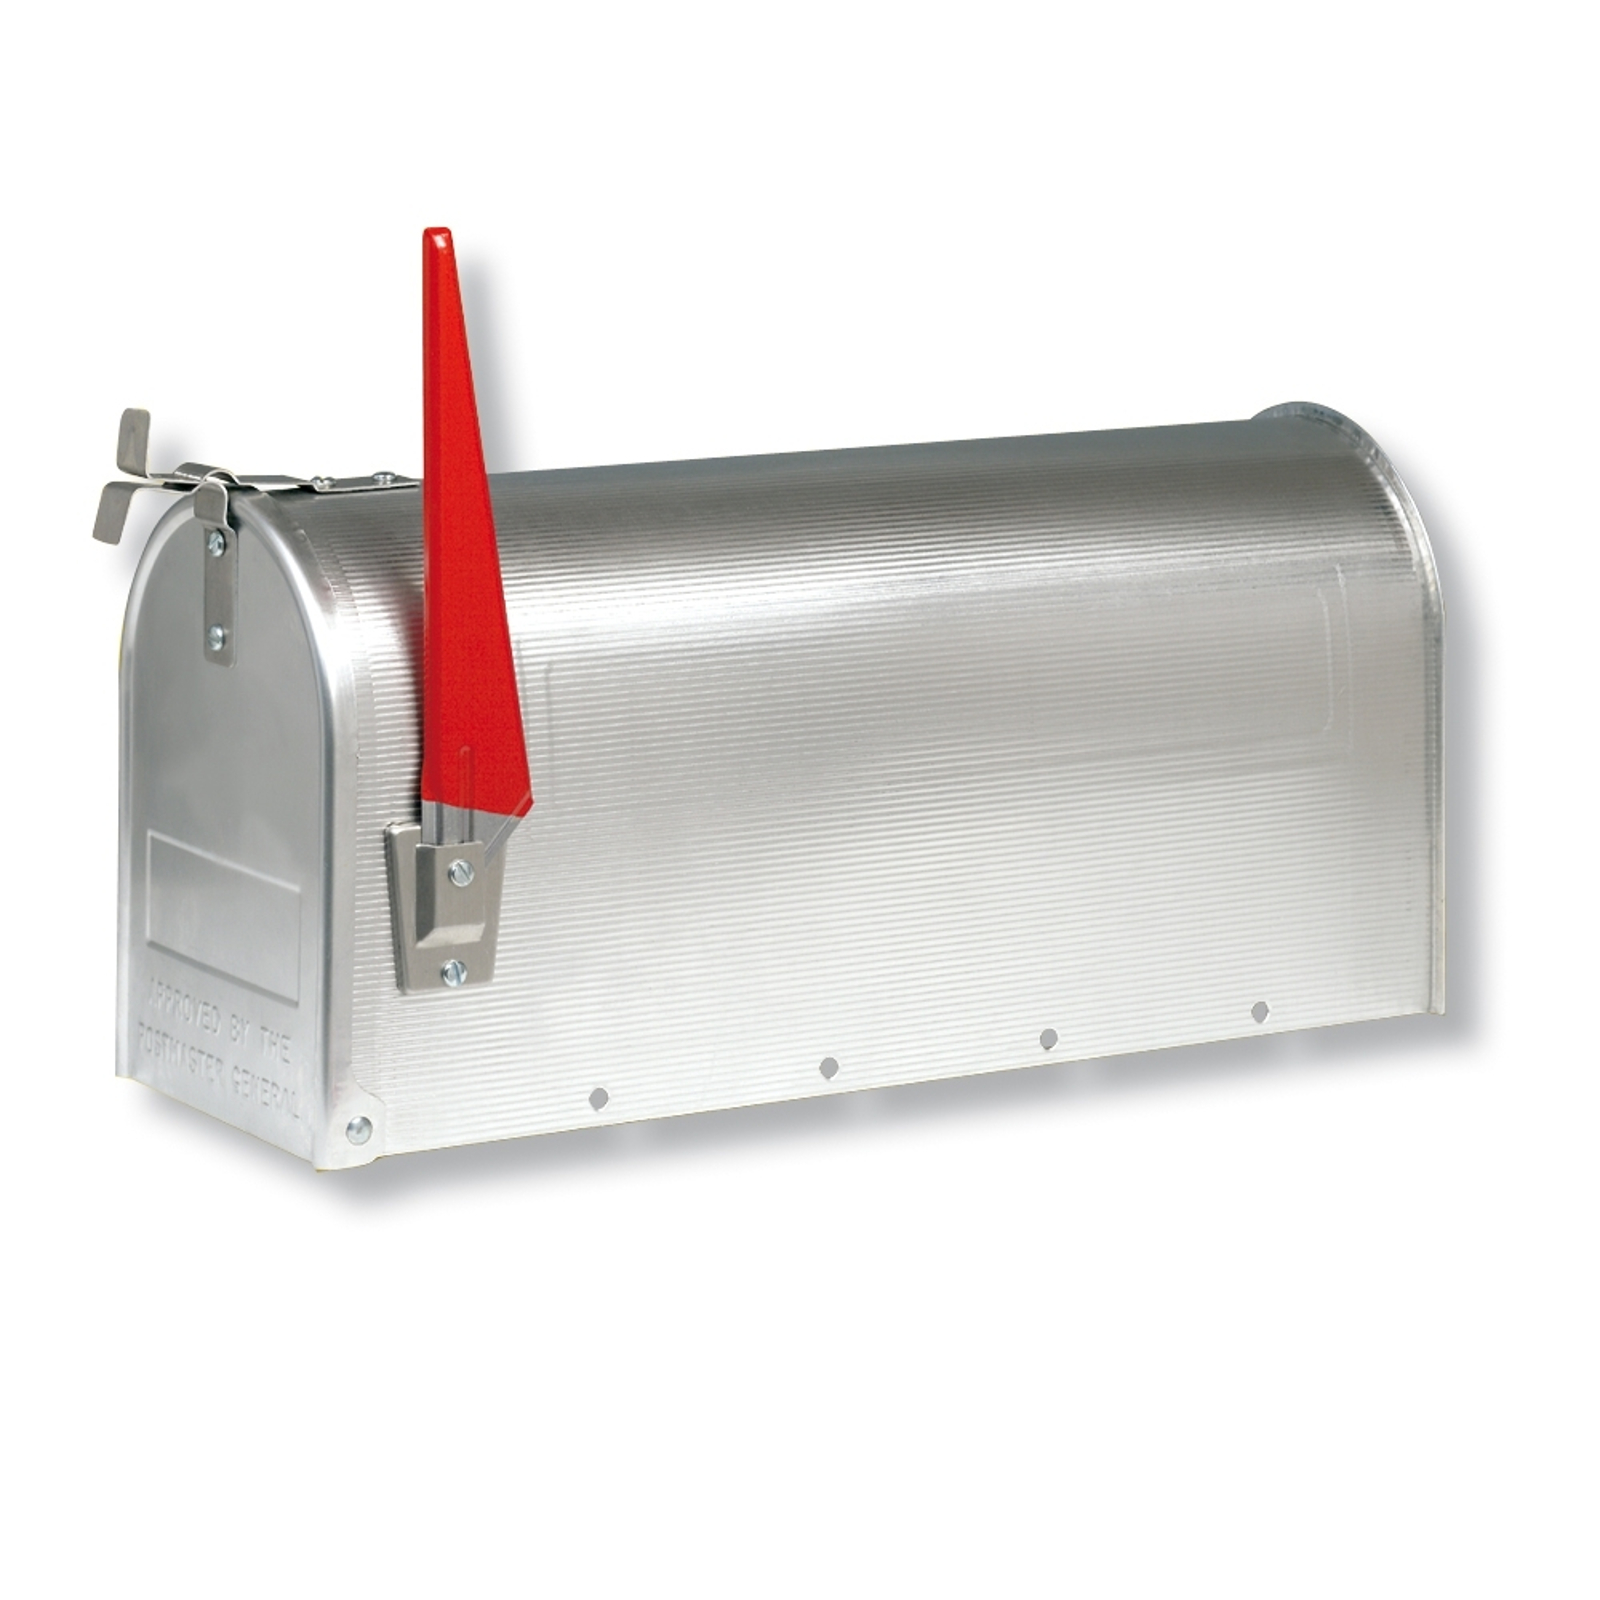 US mailbox with pivotable flag_1532118_1